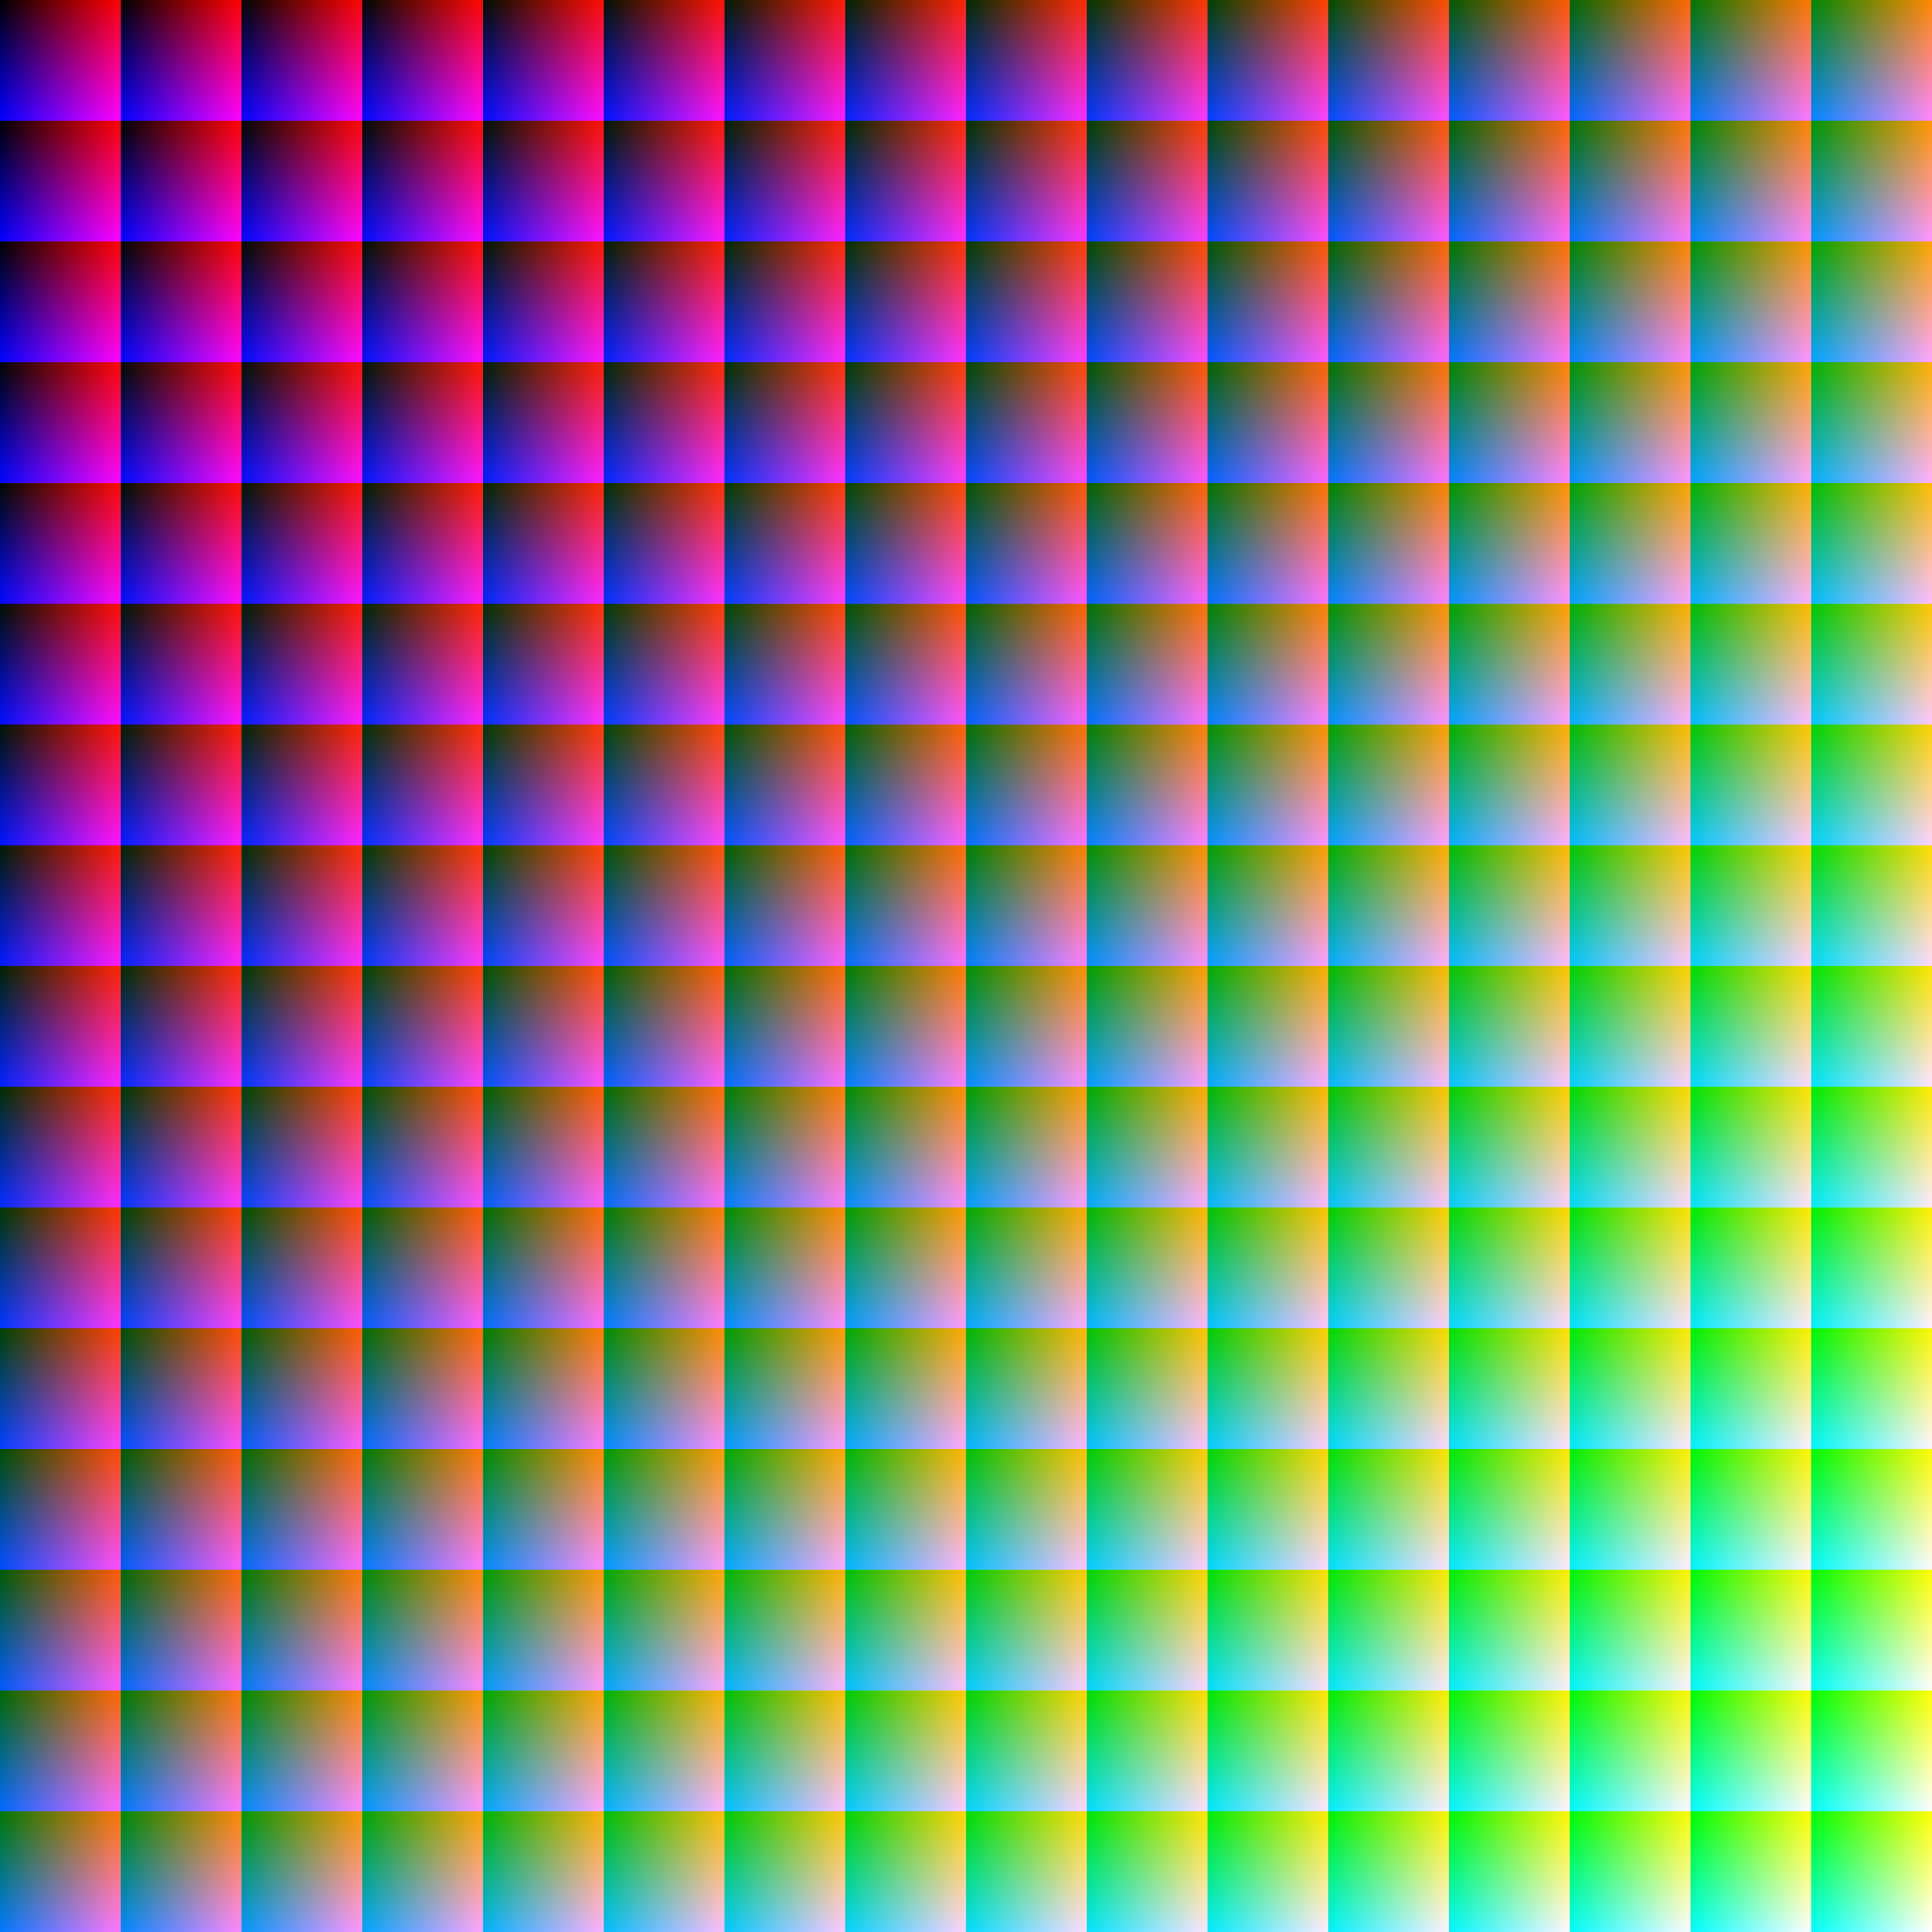 All 16,777,216 RGB colors in one picture with no repeat ...